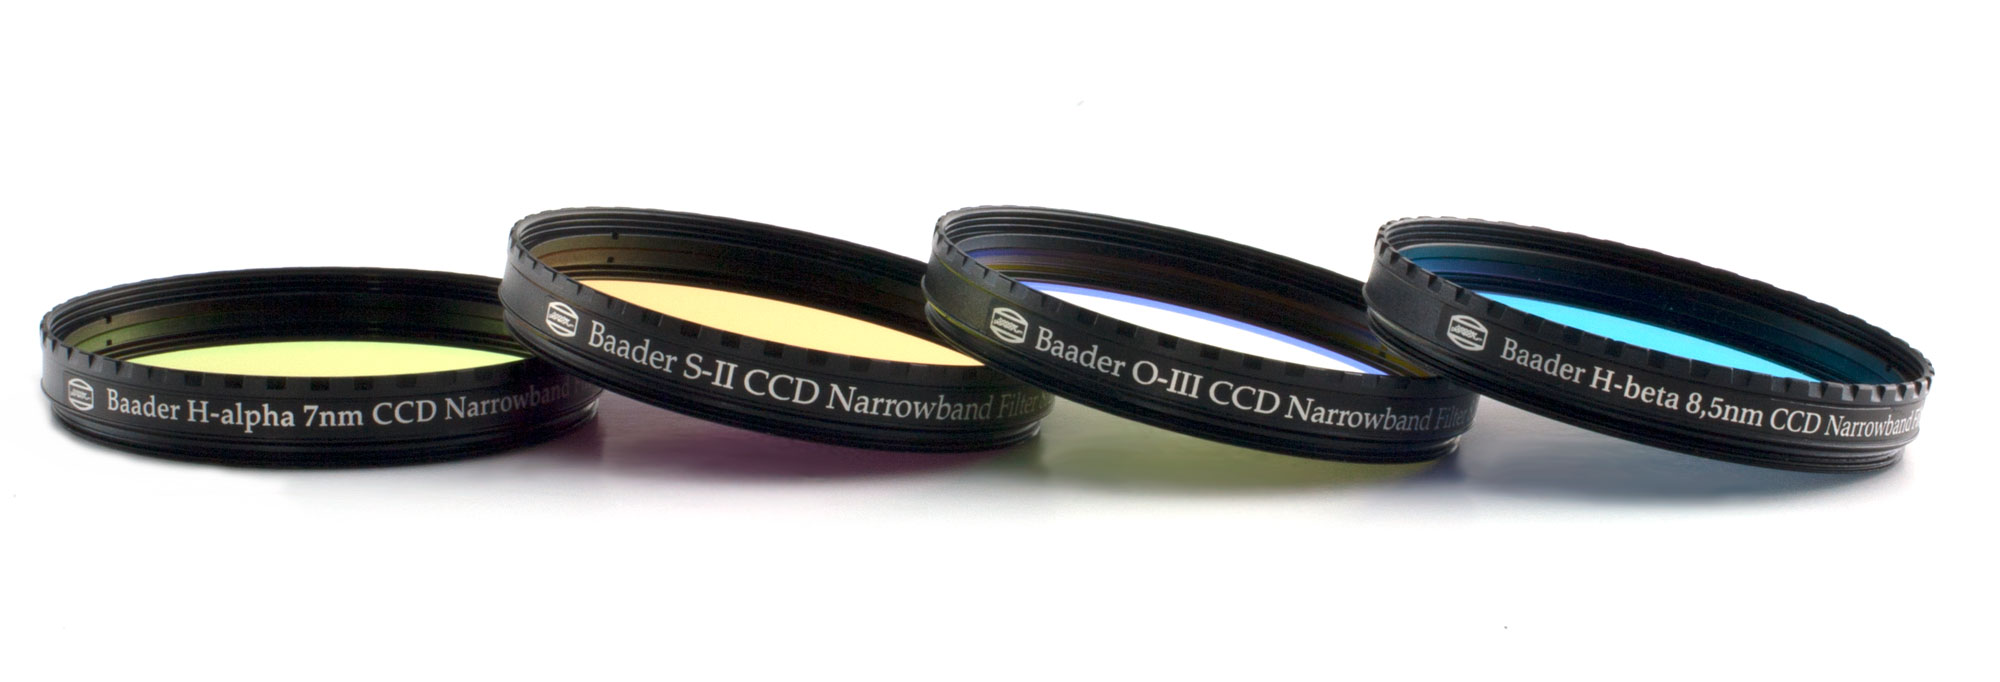 Baader Narrowband CCD Filters 2'' mounted